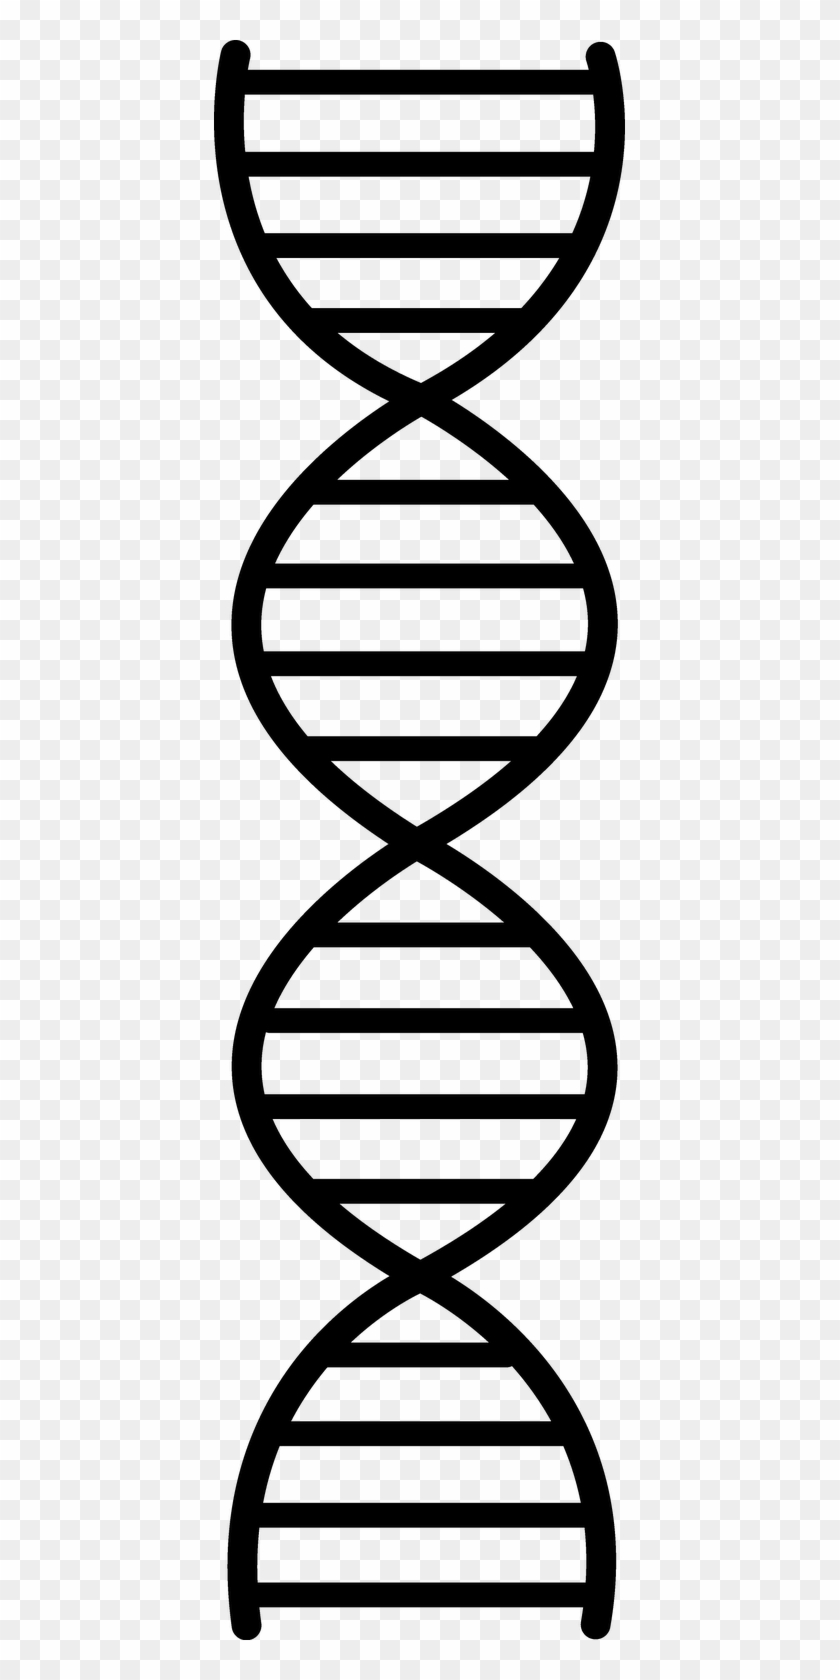 Royalty Free Black And White Dna Clipart.